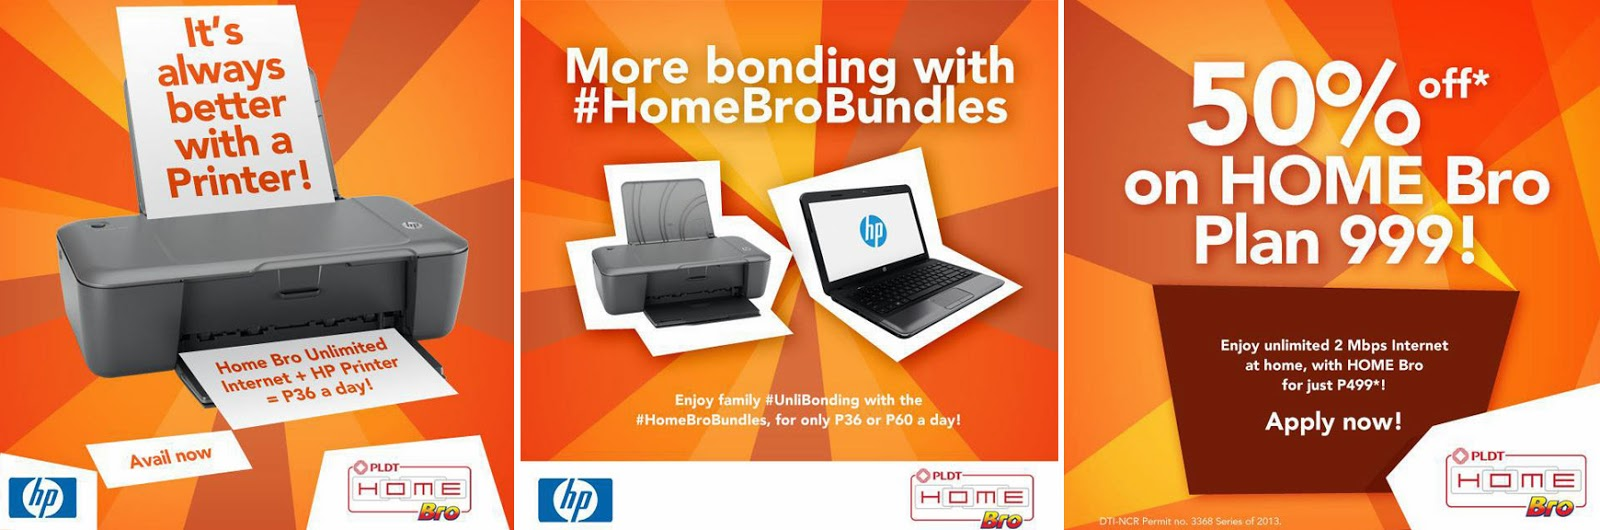 PLDT Home Bro Bundles